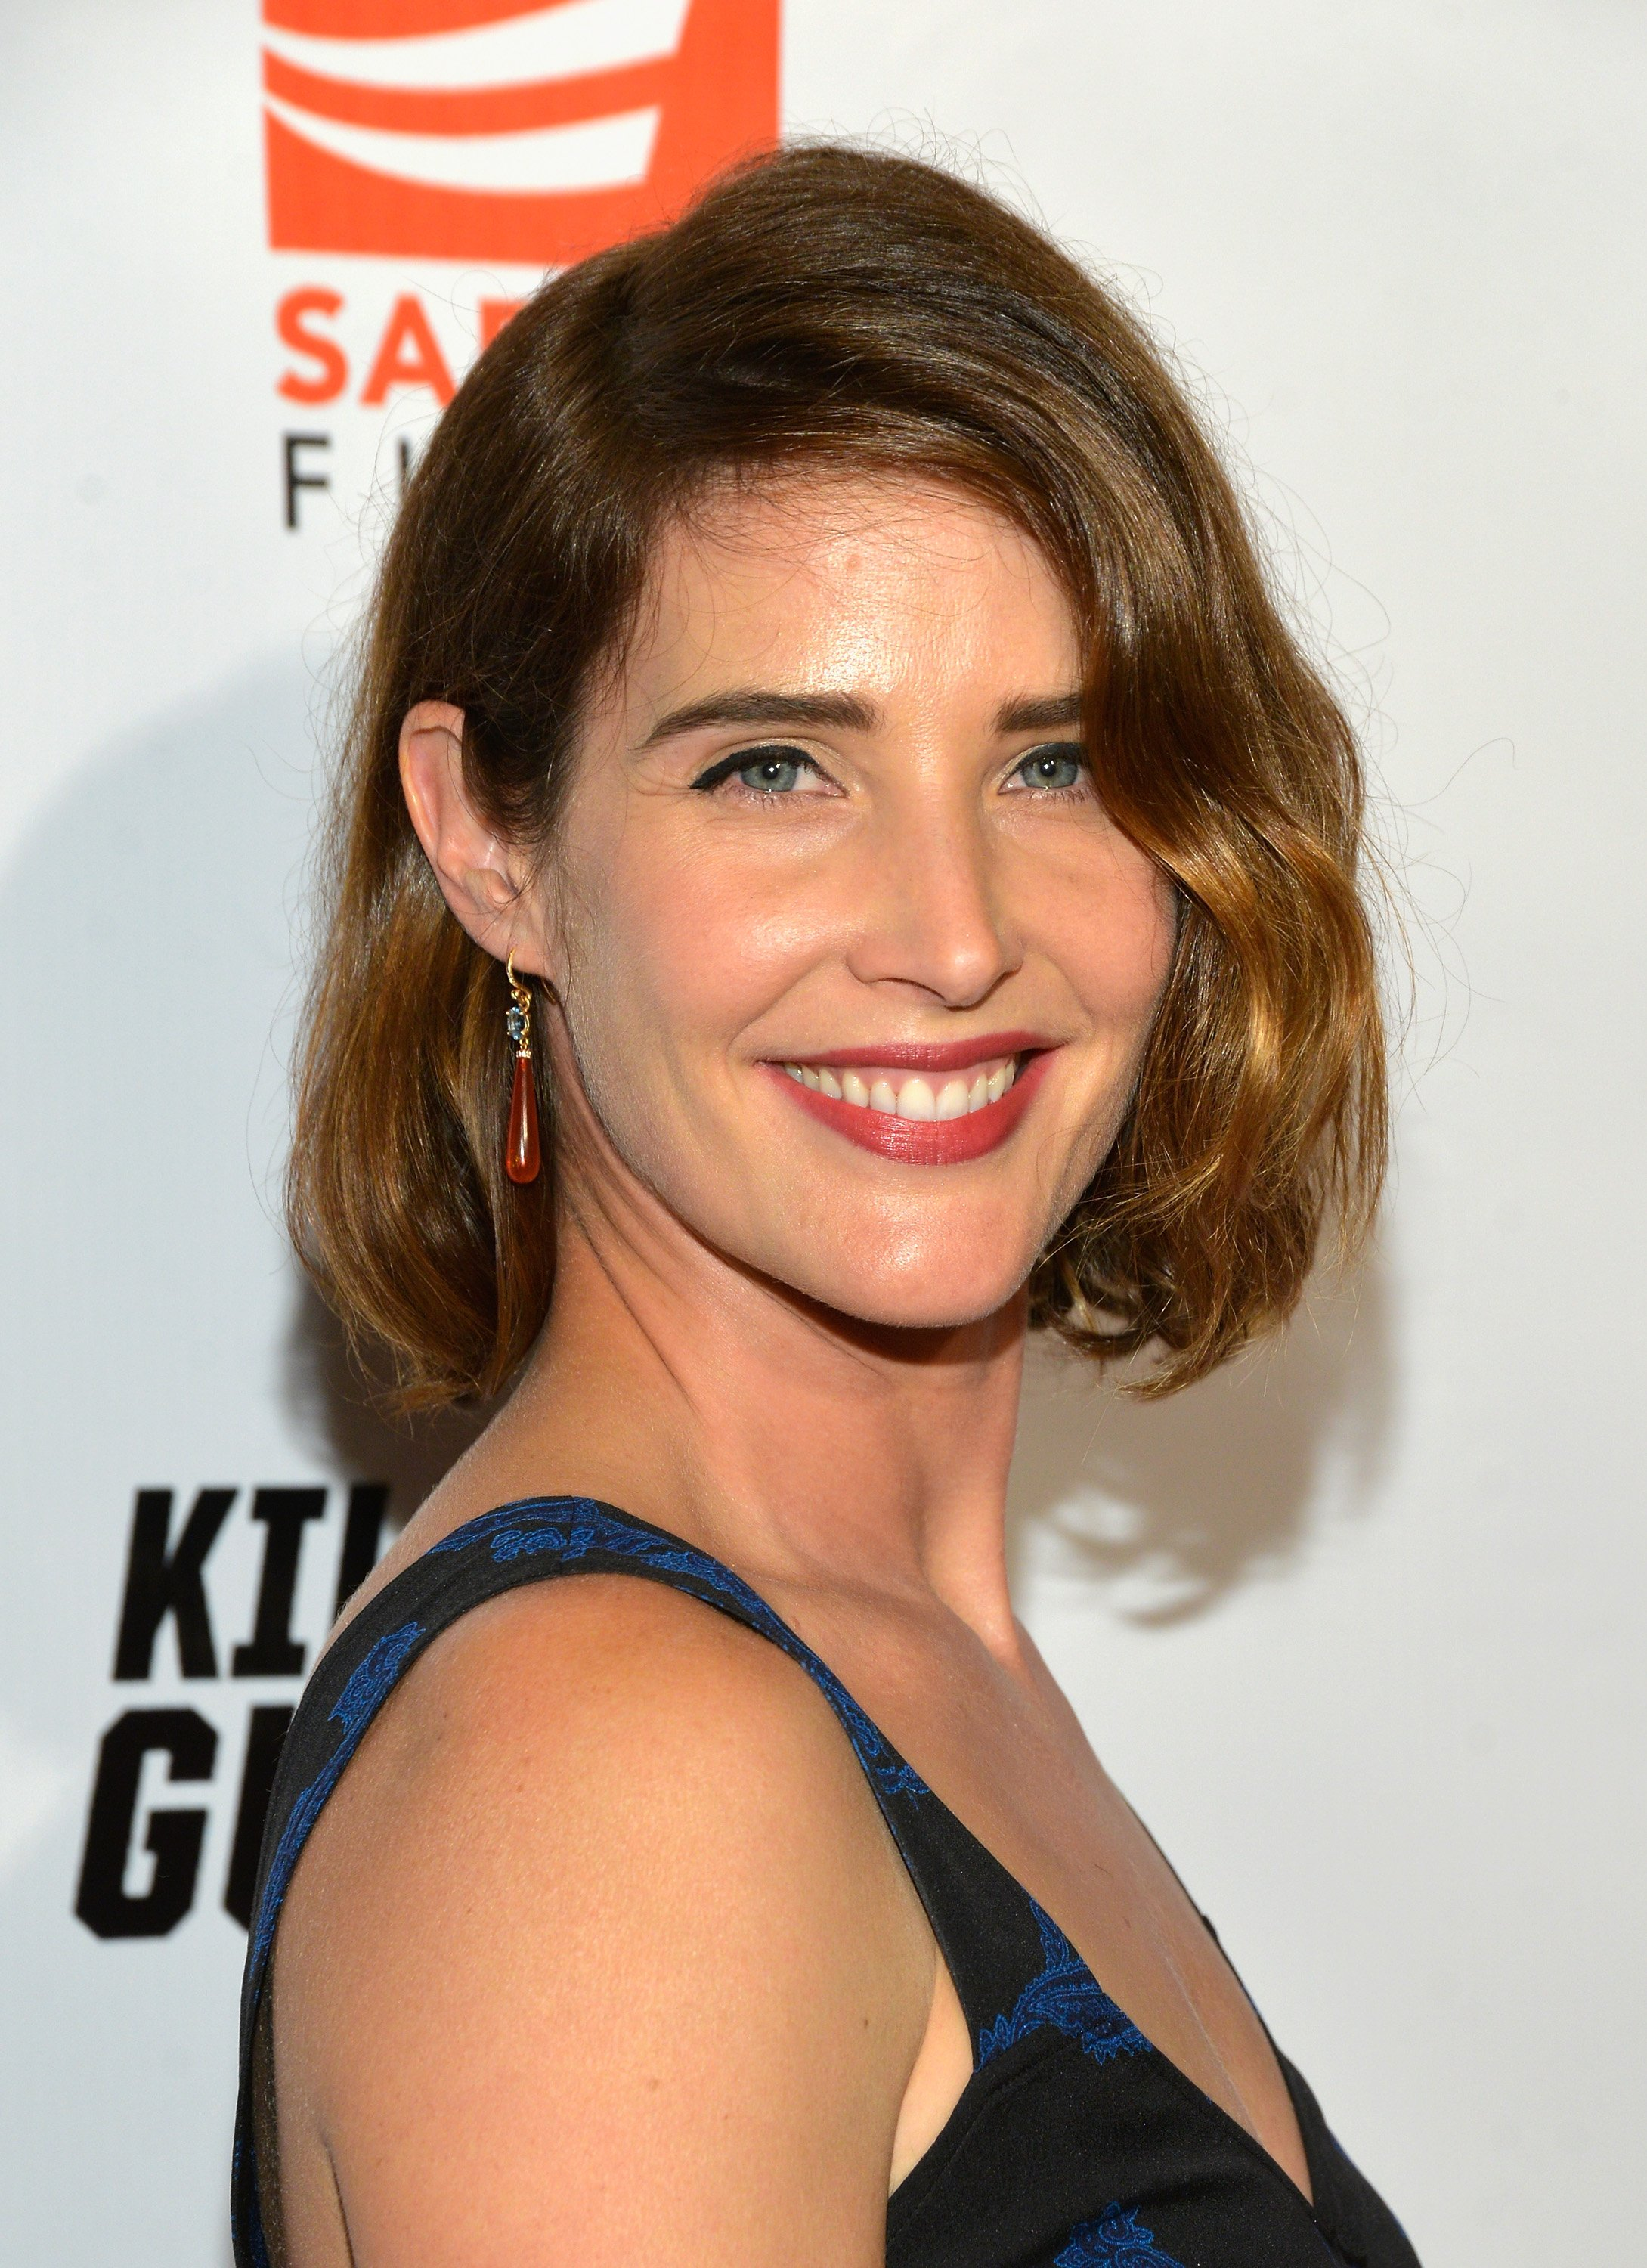 Cobie Smulders am TCL Chinese Theatre am 14. Oktober 2017 in Hollywood, Kalifornien. | Quelle: Getty Images